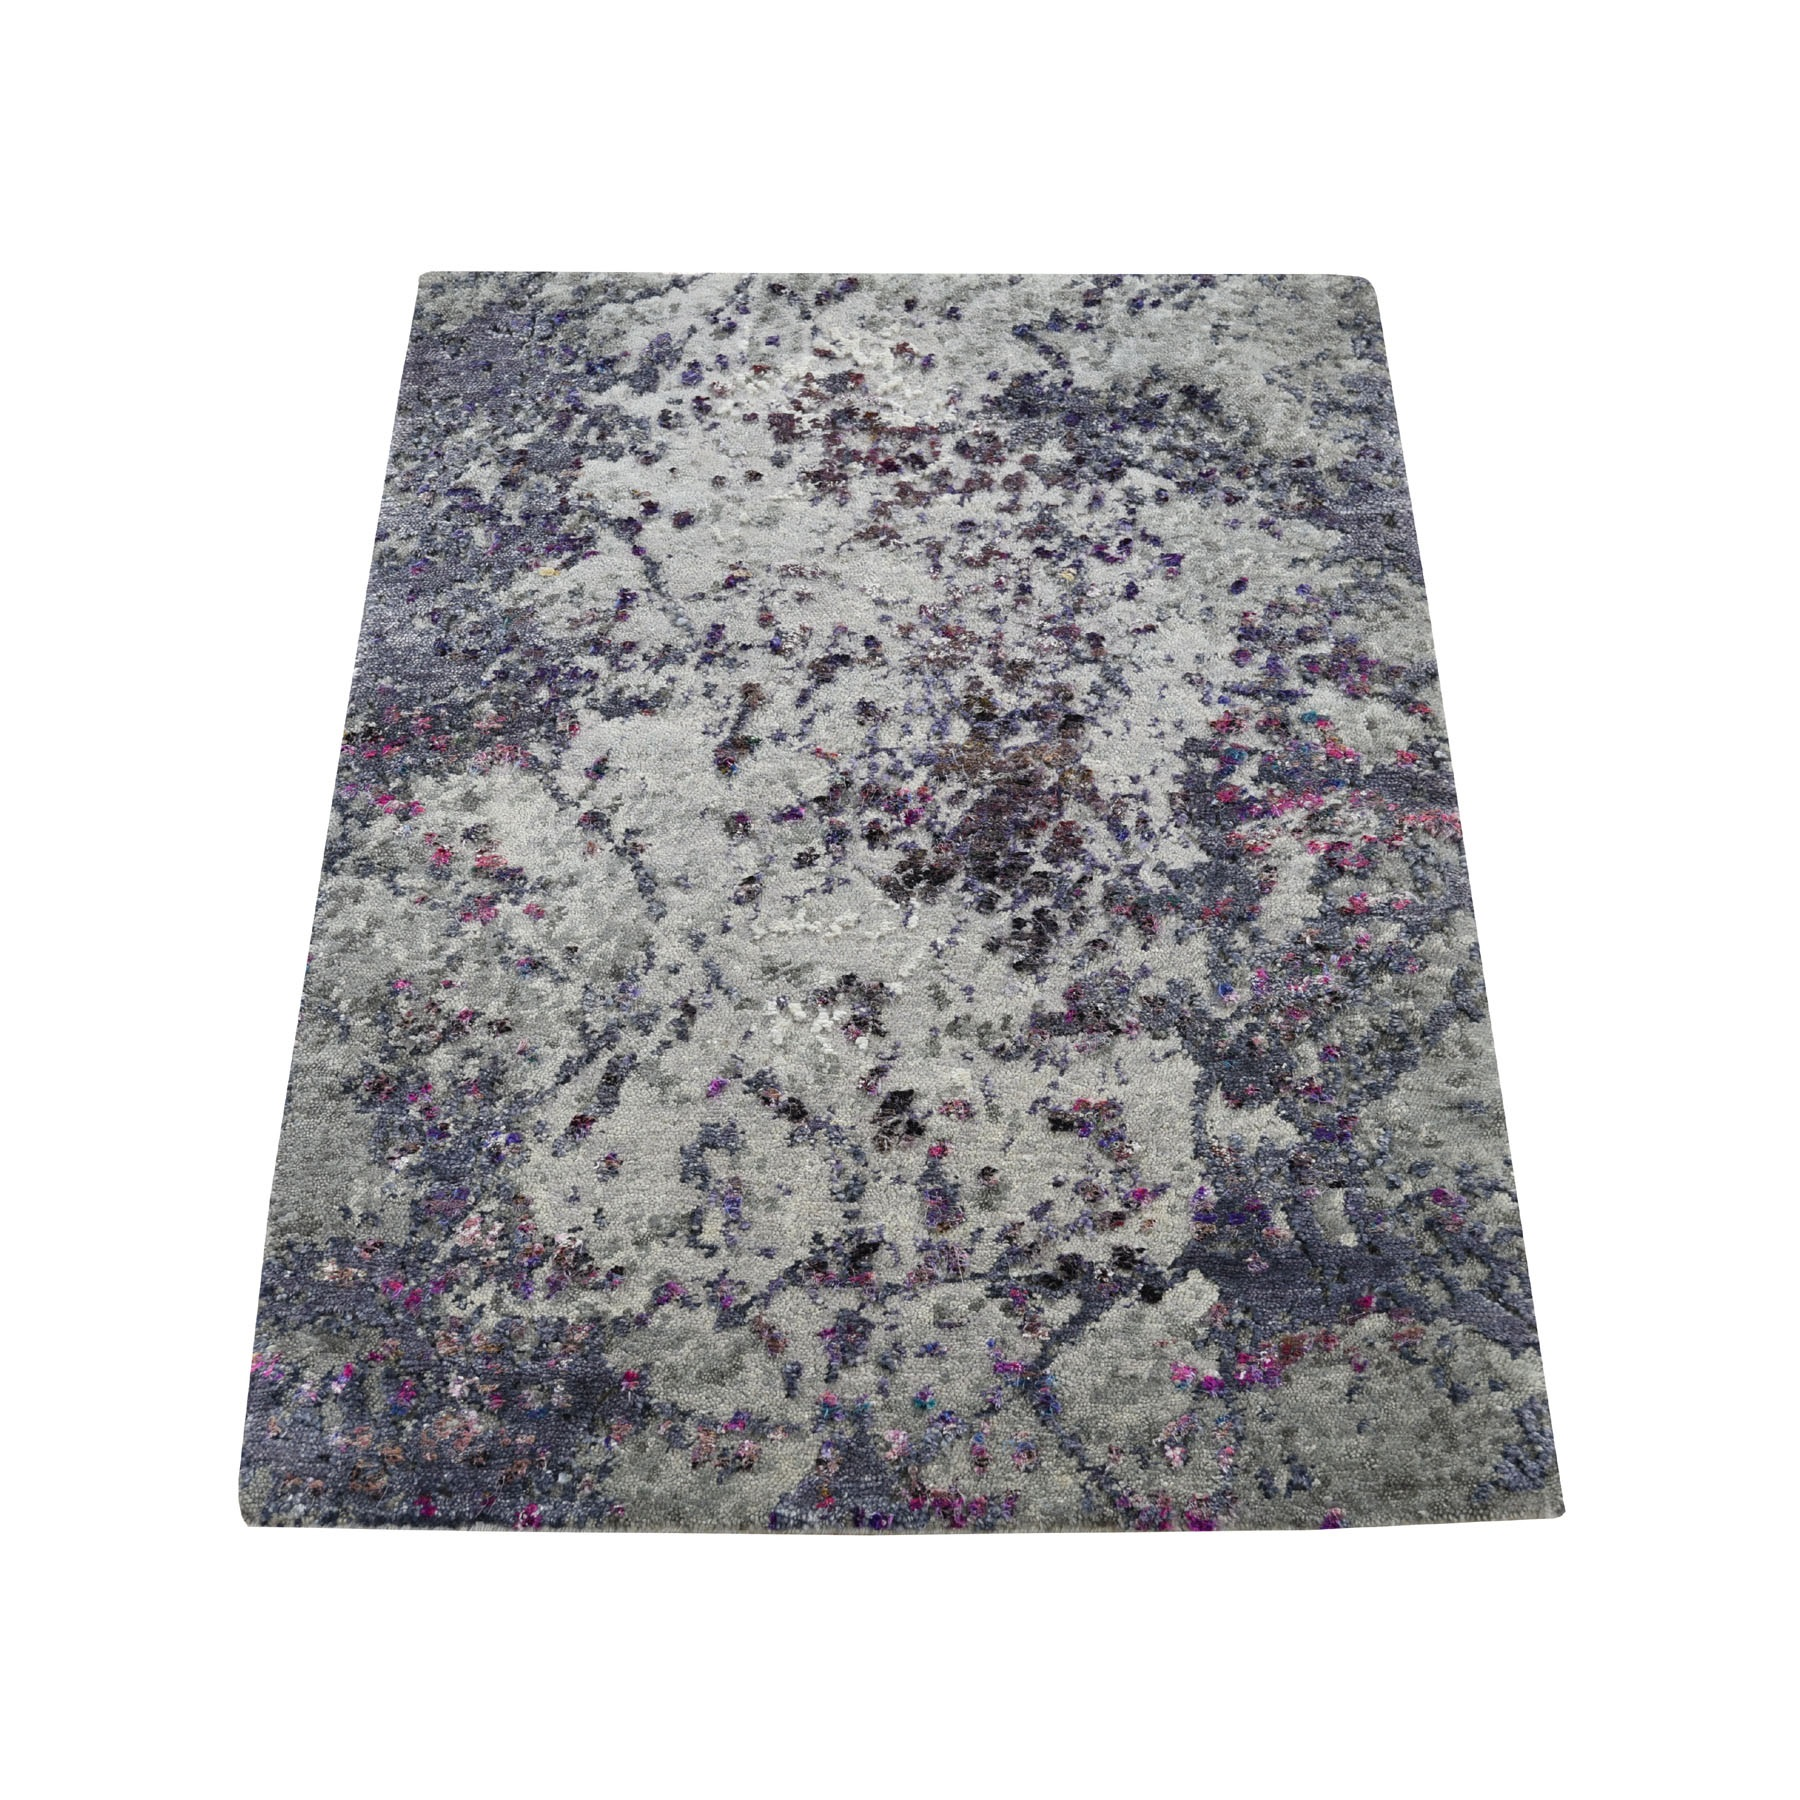 "2'2""x3' Sample Gray Abstract Design Wool and Silk Hand-Knotted Oriental Rug"